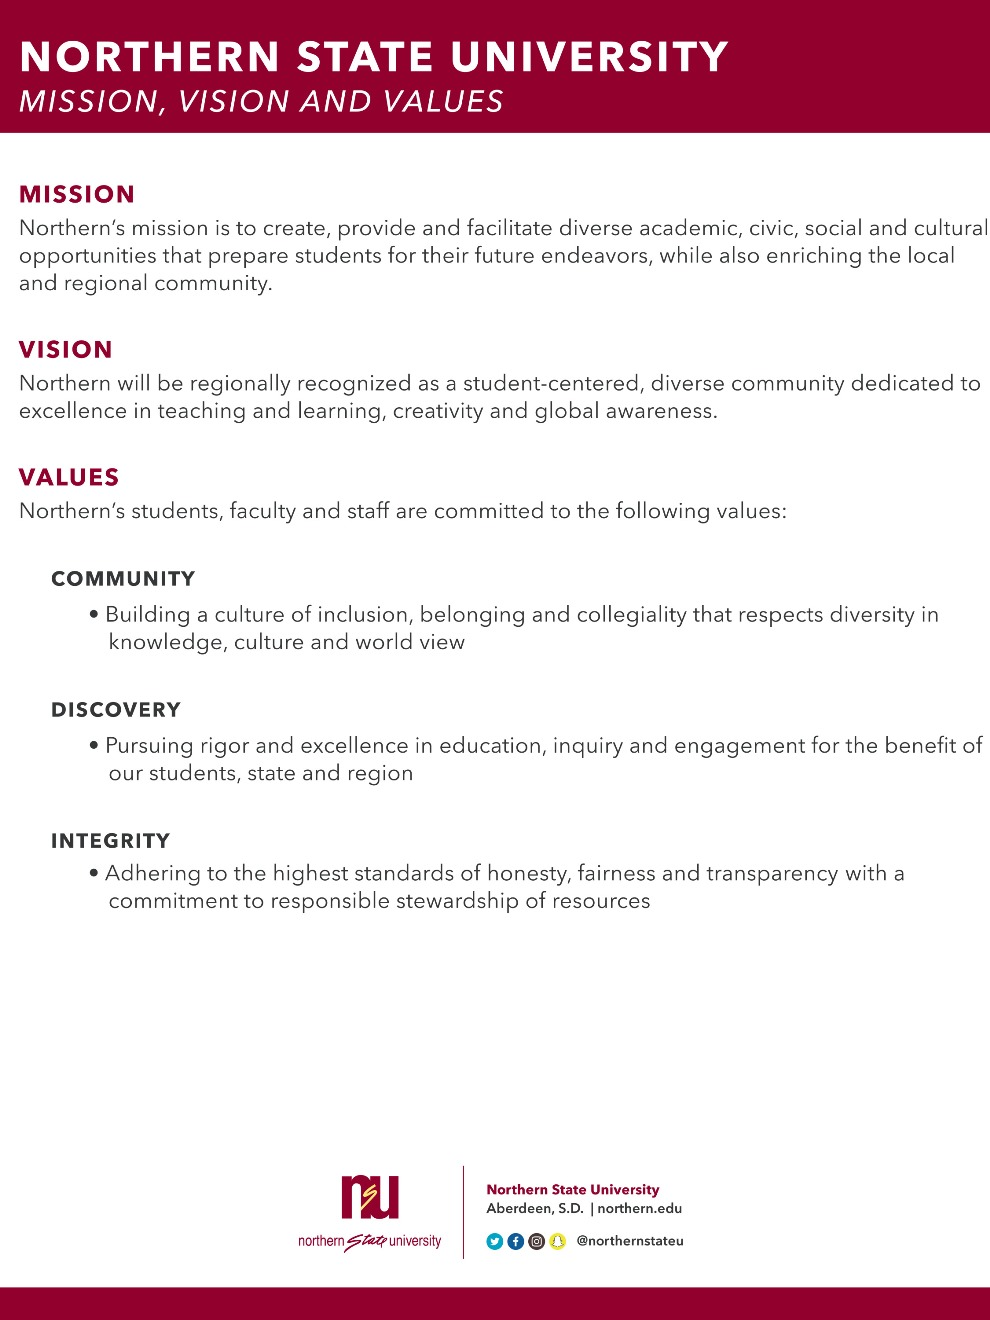 NSU Mission, Vision and Values statement